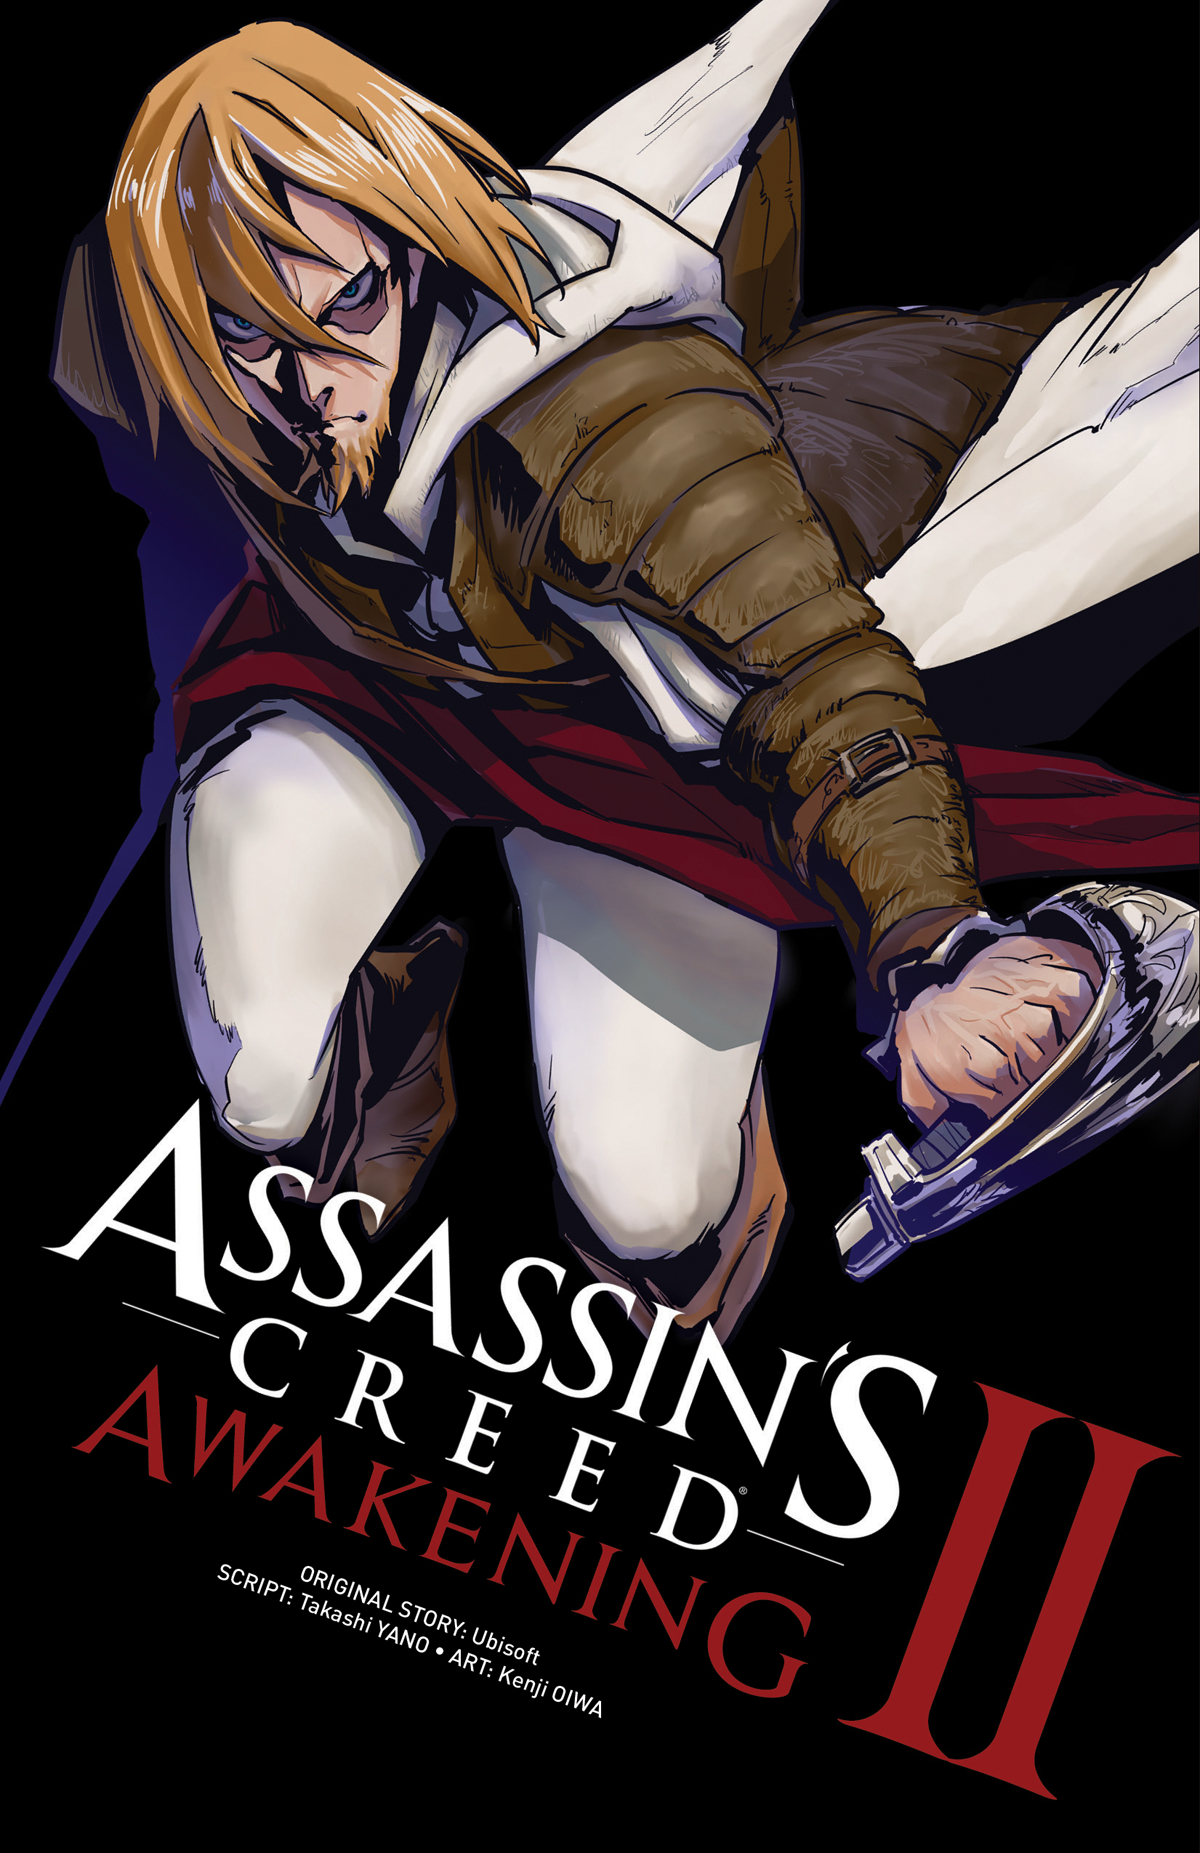 ASSASSINS CREED AWAKENING TP VOL 02